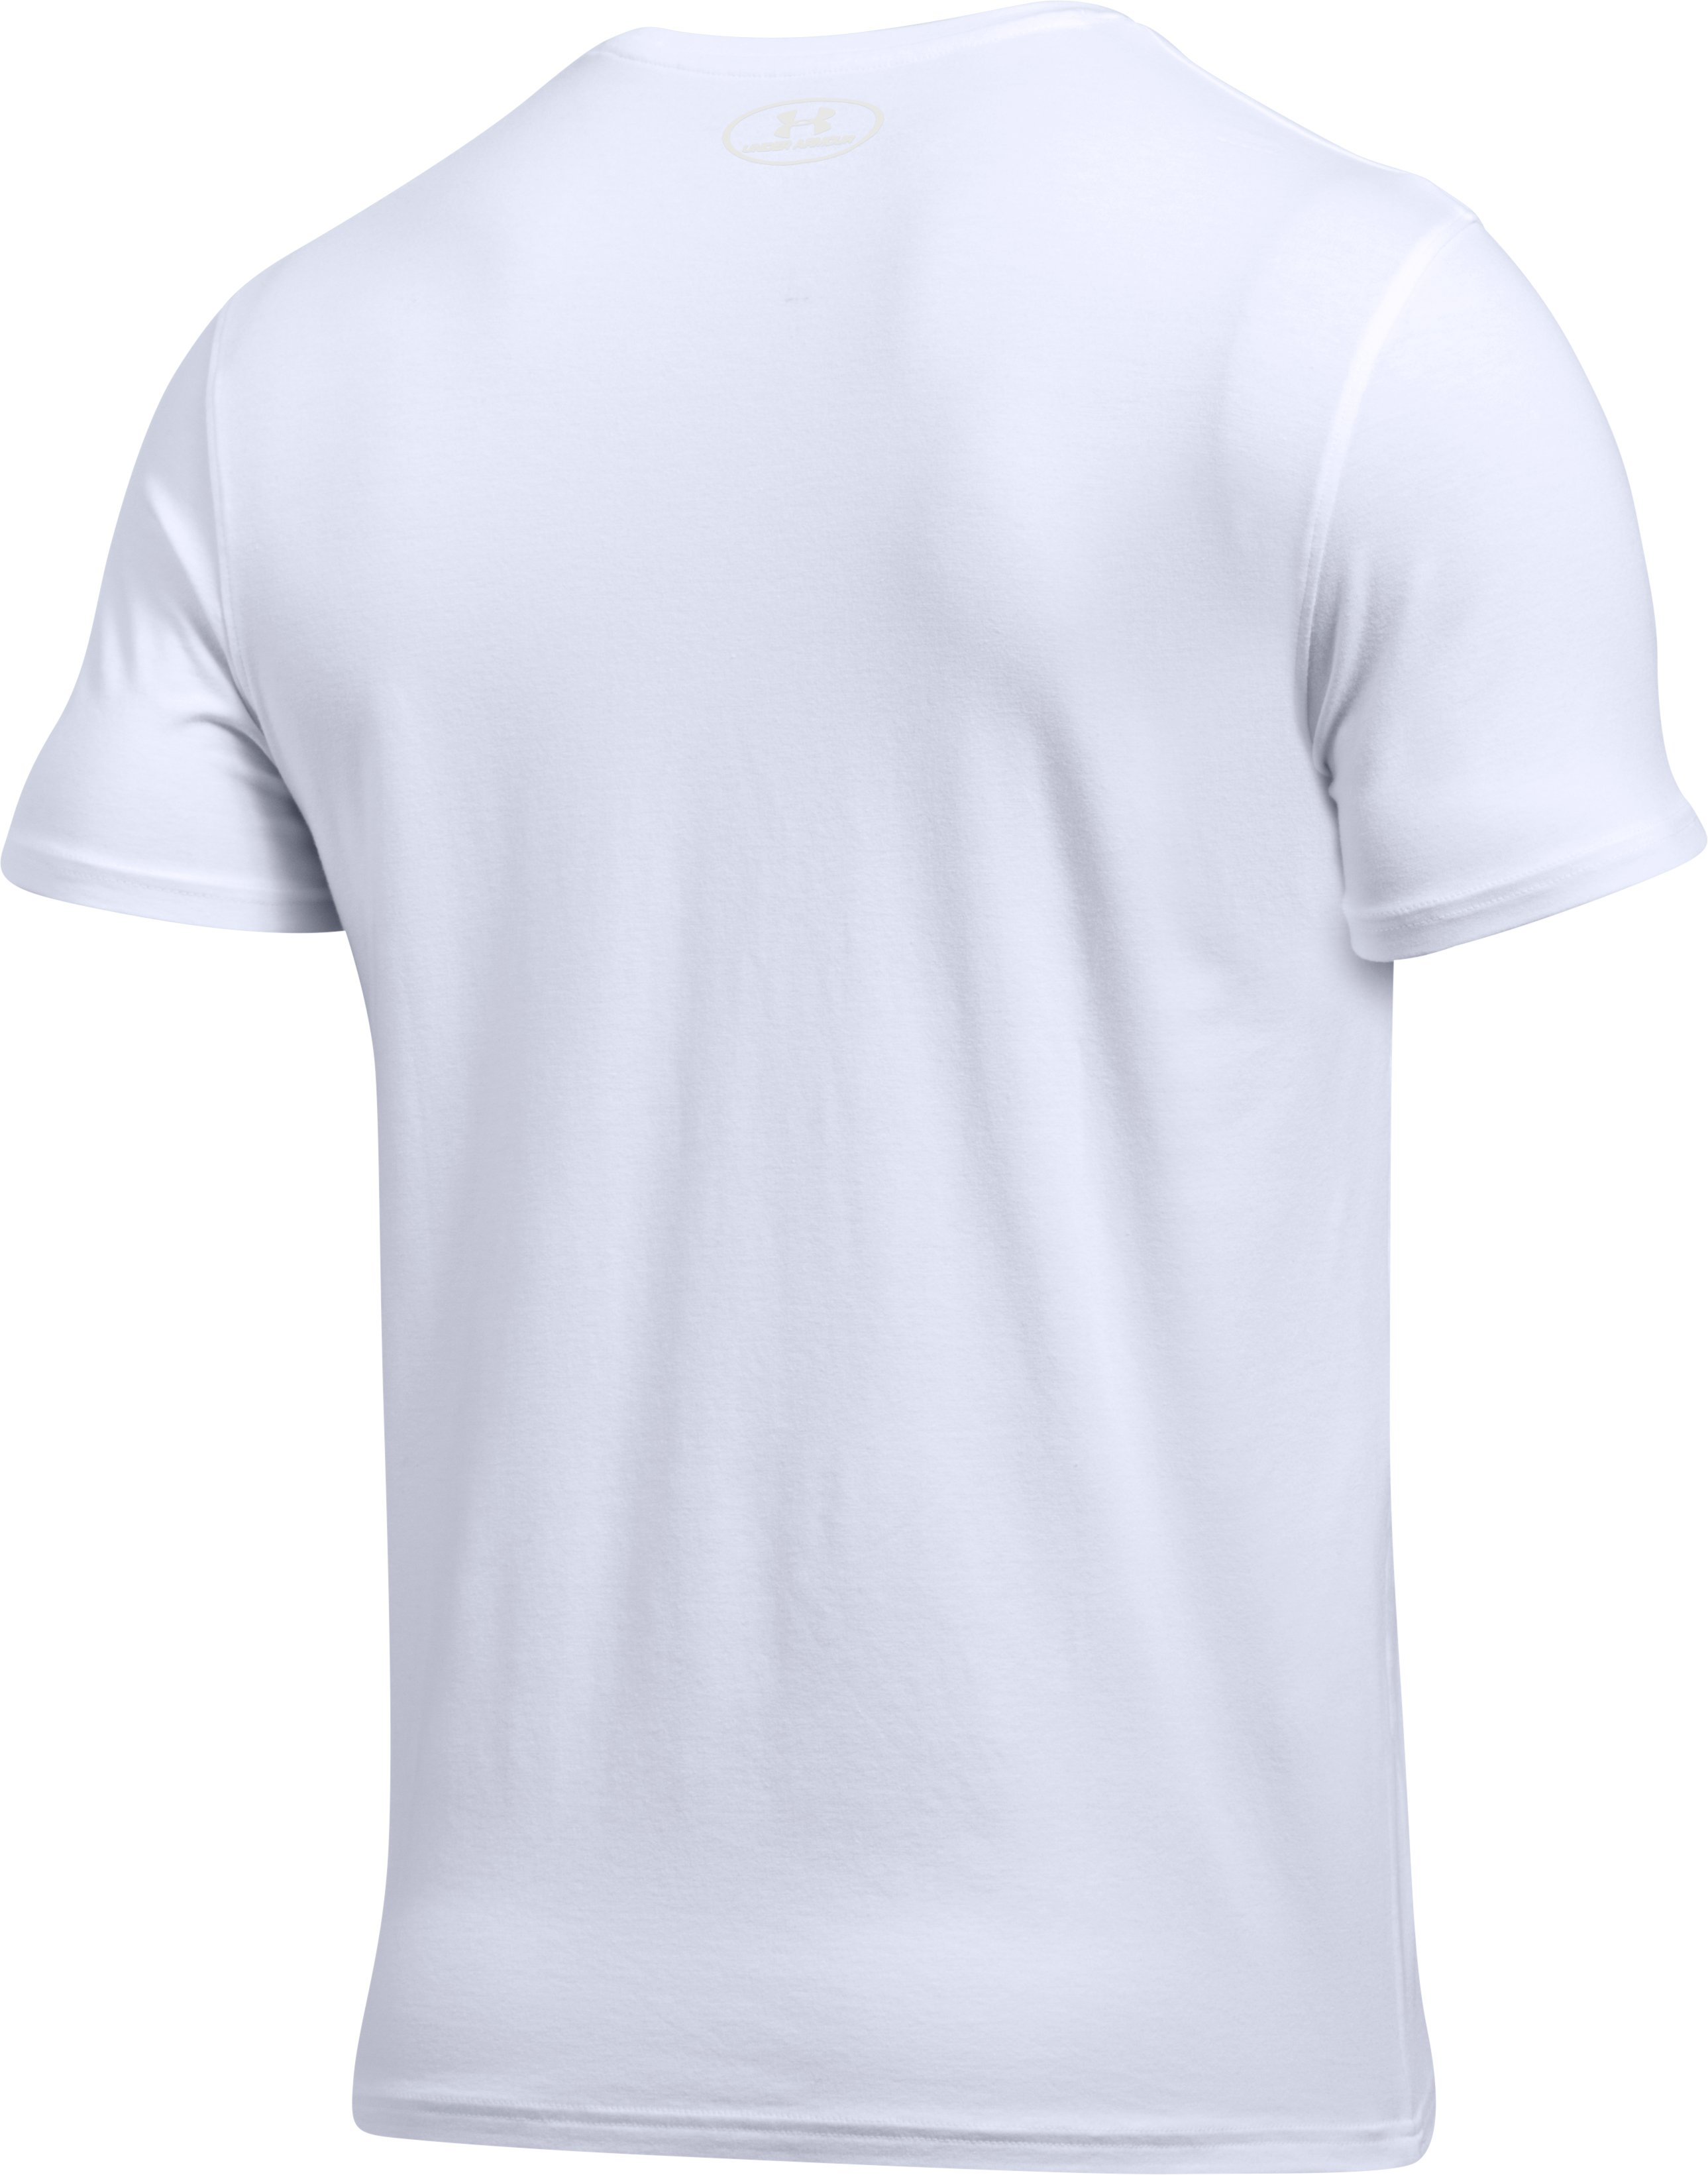 Men's Charged Cotton® Crew Undershirt – 2-Pack, White,